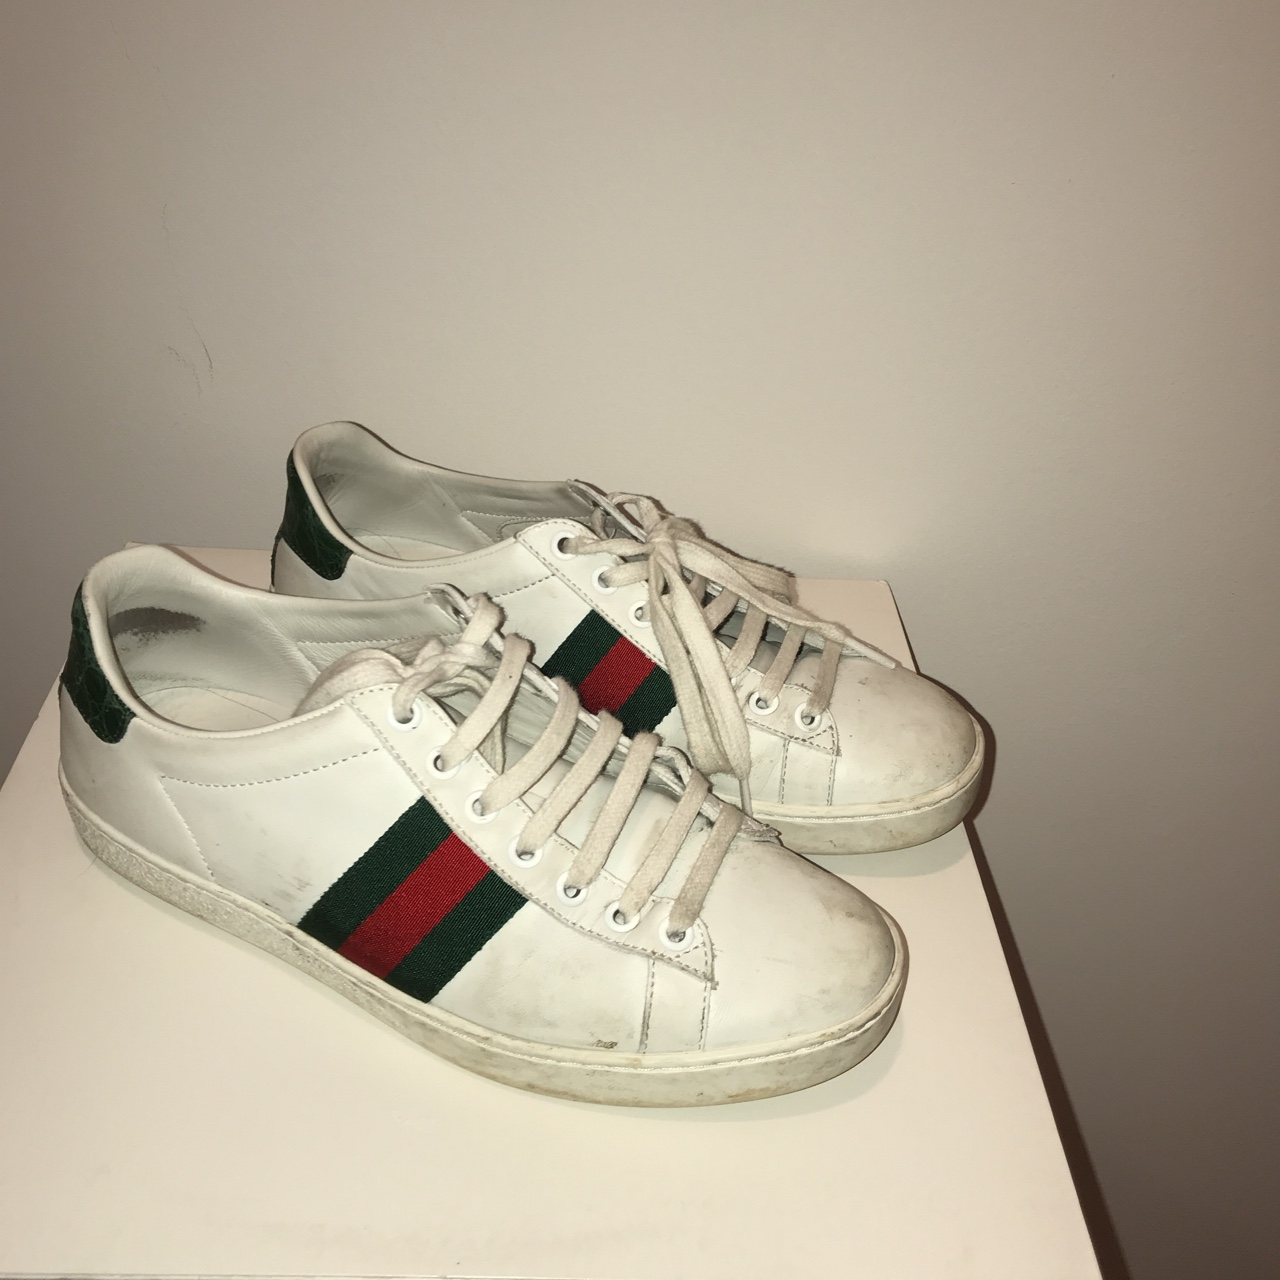 Gucci Ace Sneakers🇮🇹 Worn in Purchased